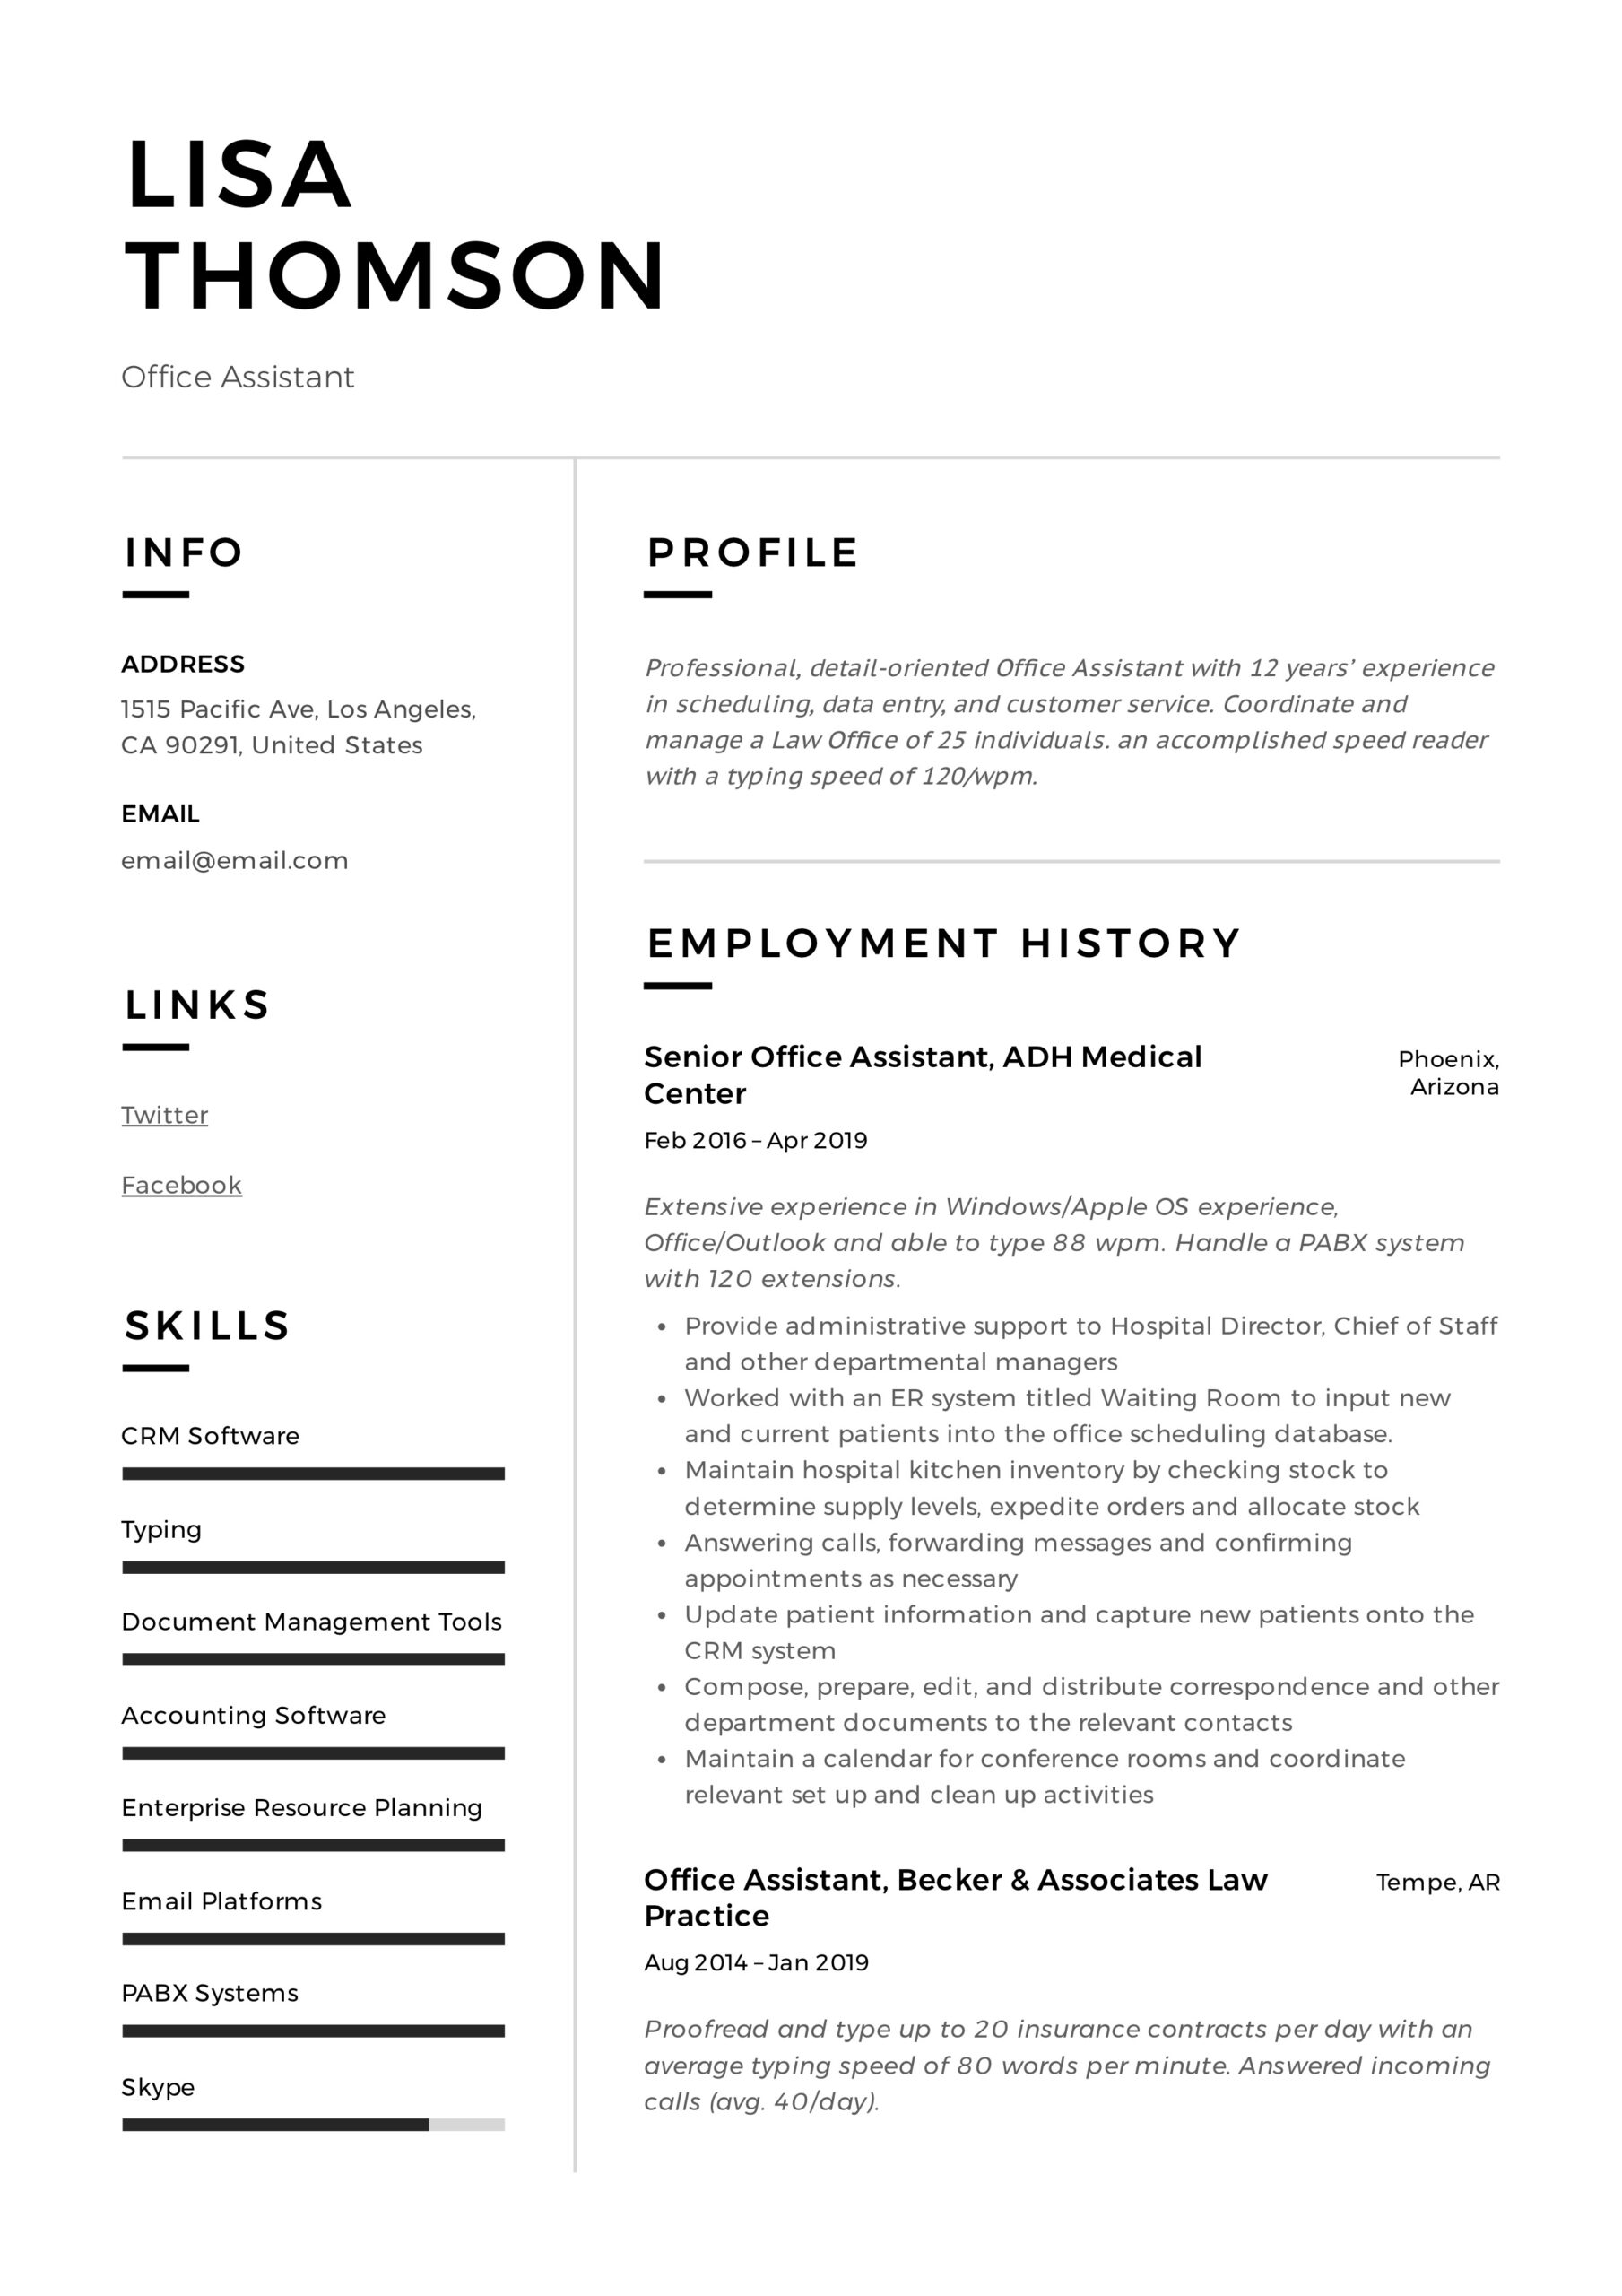 office assistant resume writing guide templates summary lisa thomson customer service Resume Office Assistant Resume Summary